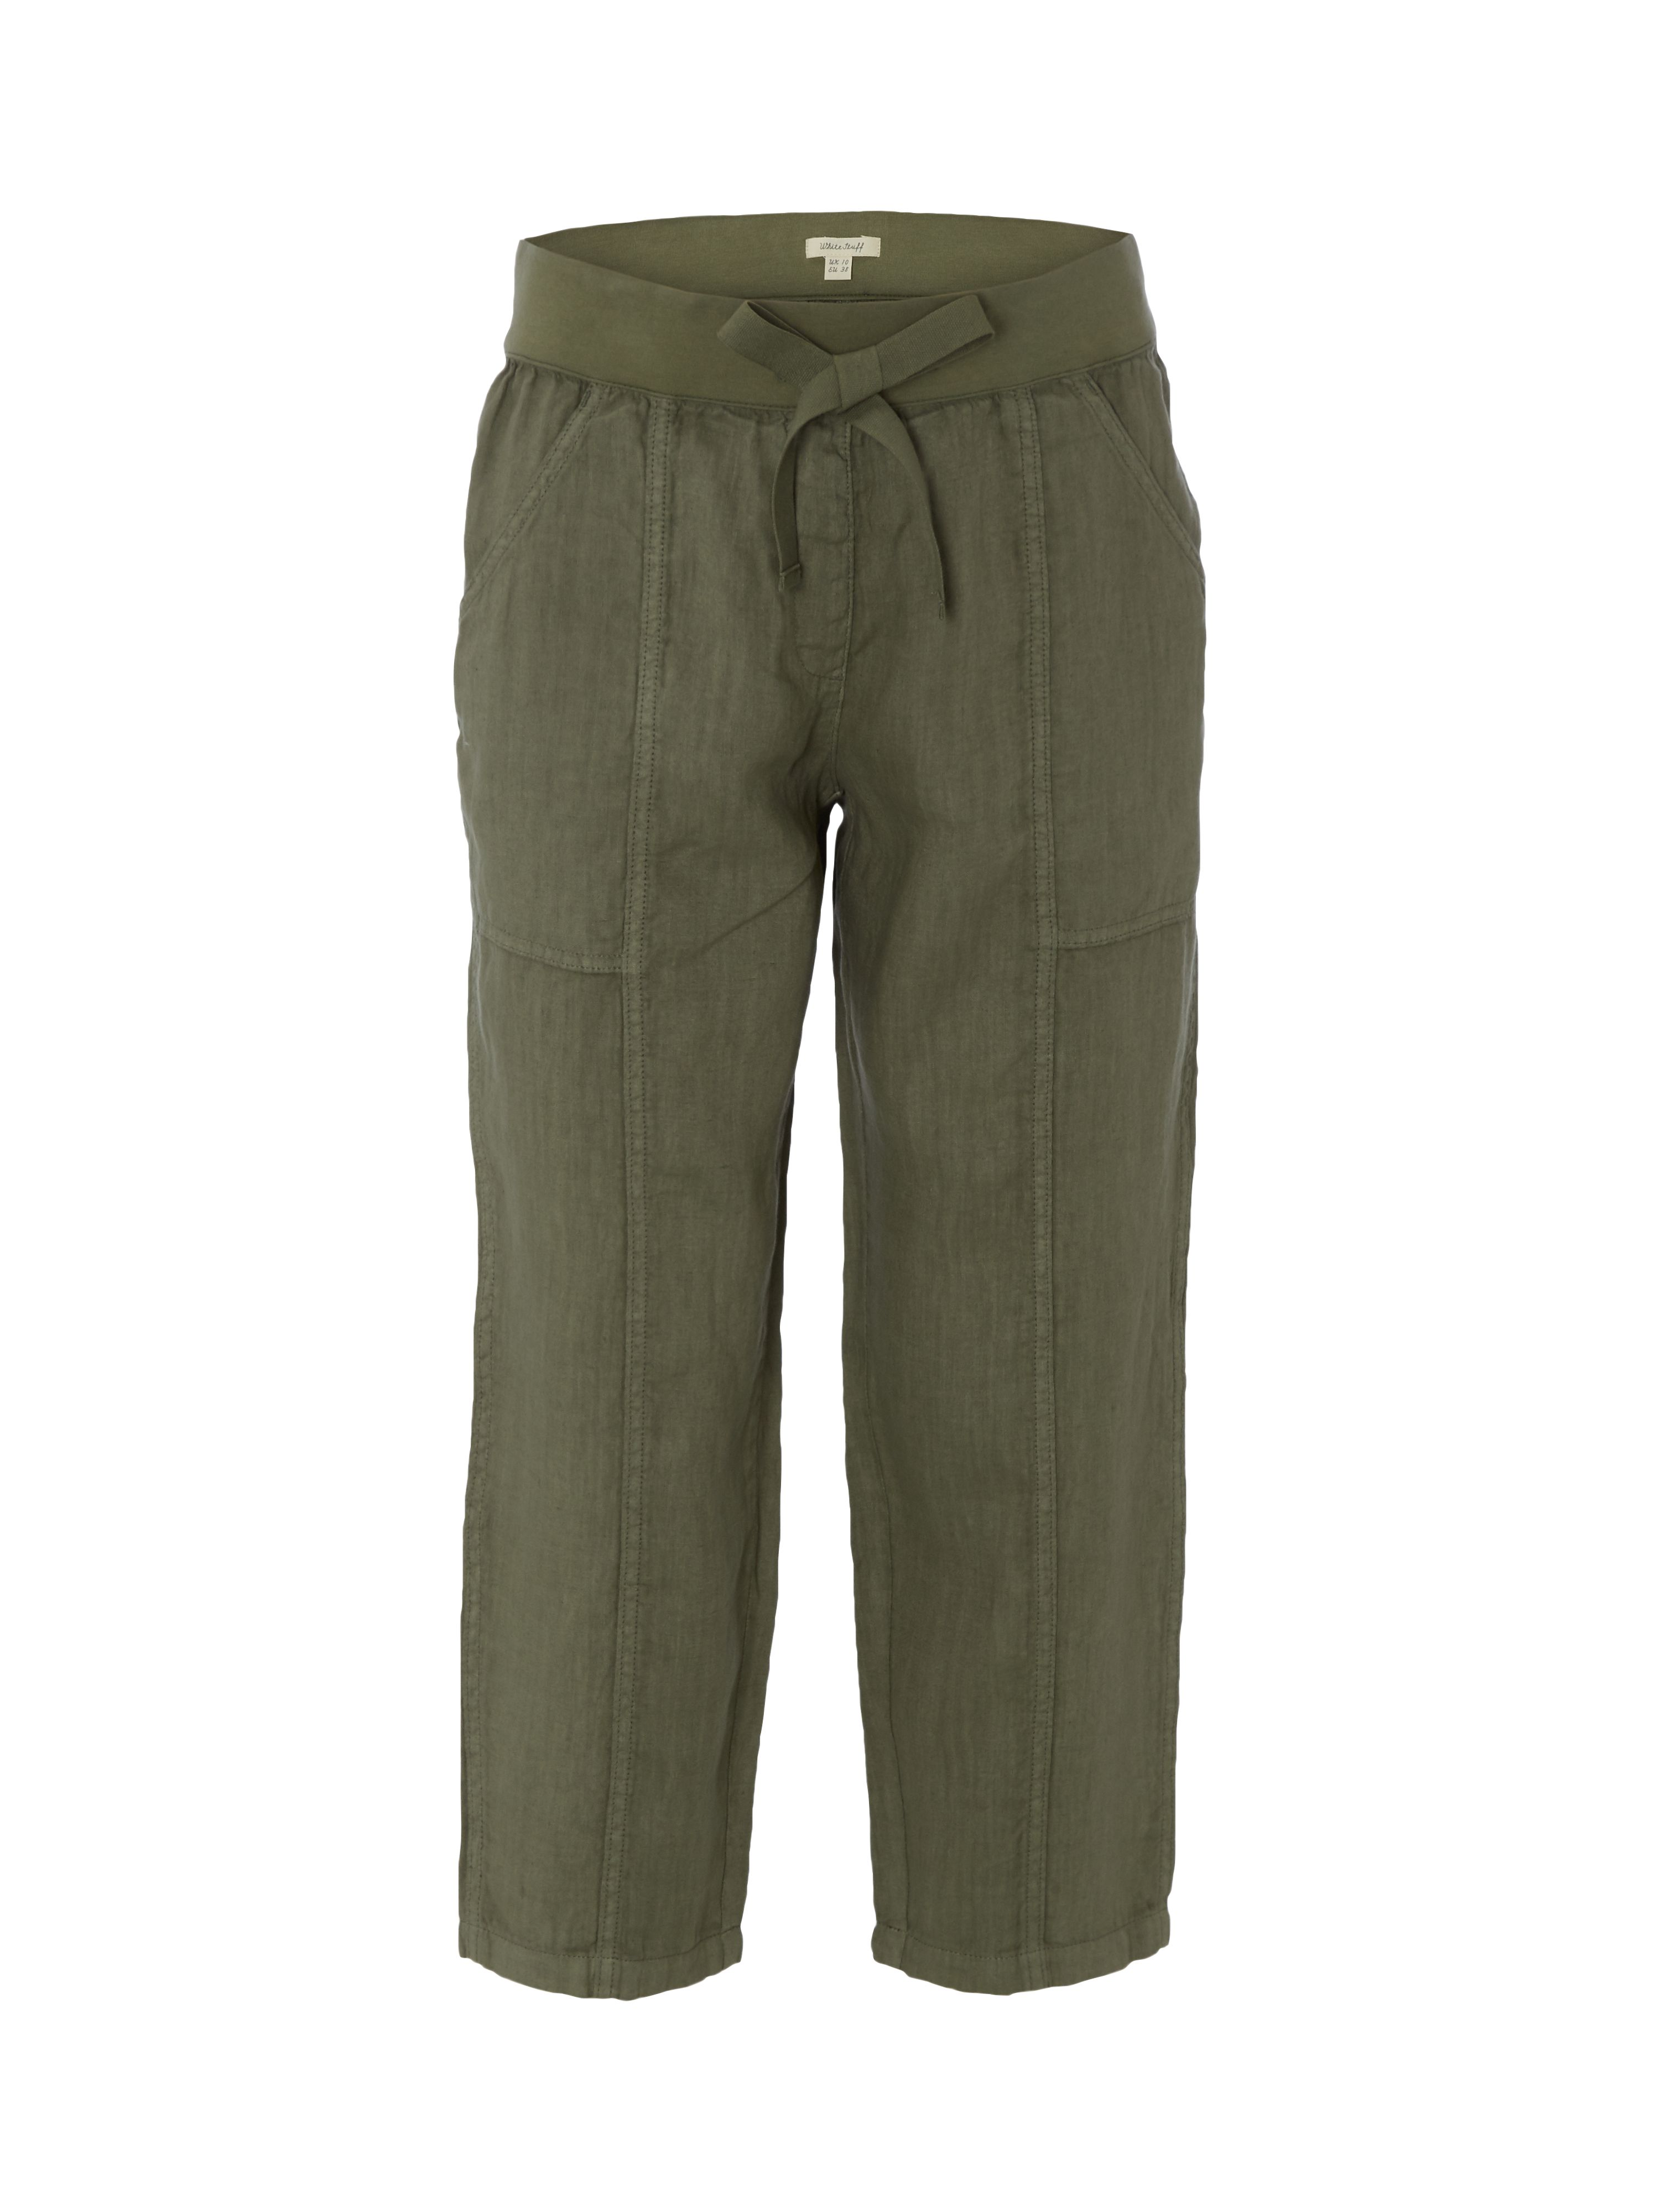 White Stuff Faria Linen Crop Trouser, Khaki